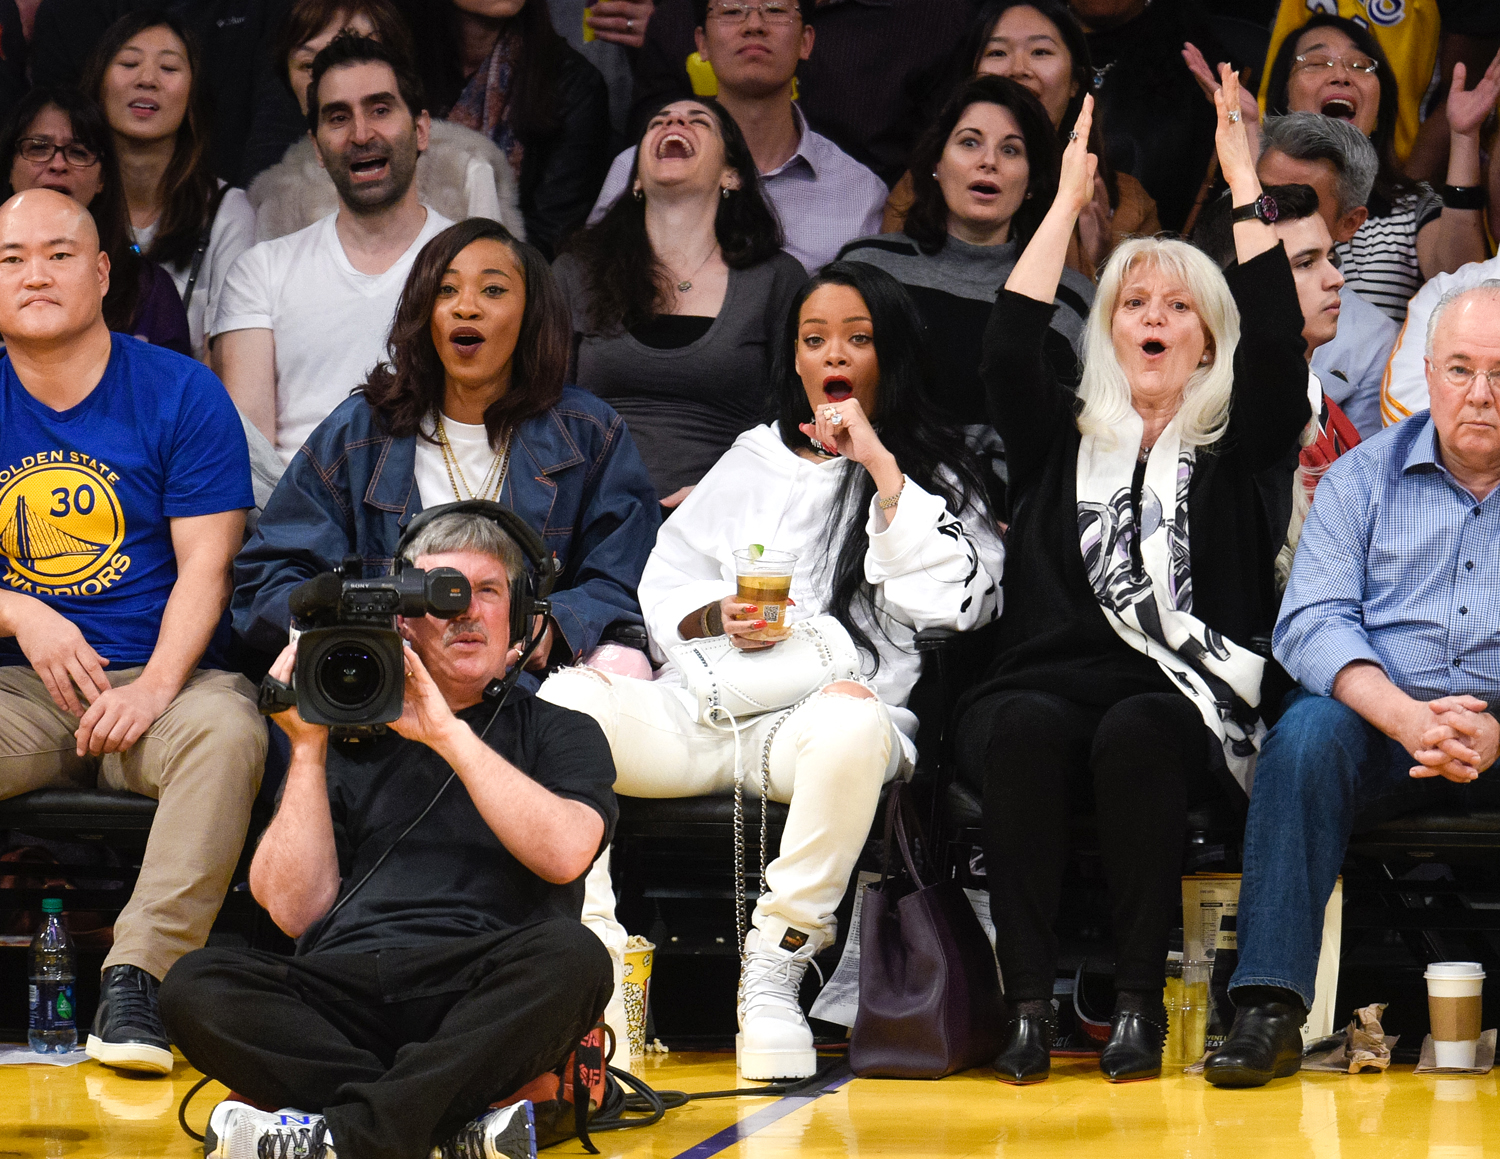 Rihanna attends a basketball game between the Golden State Warriors and the Los Angeles Lakers